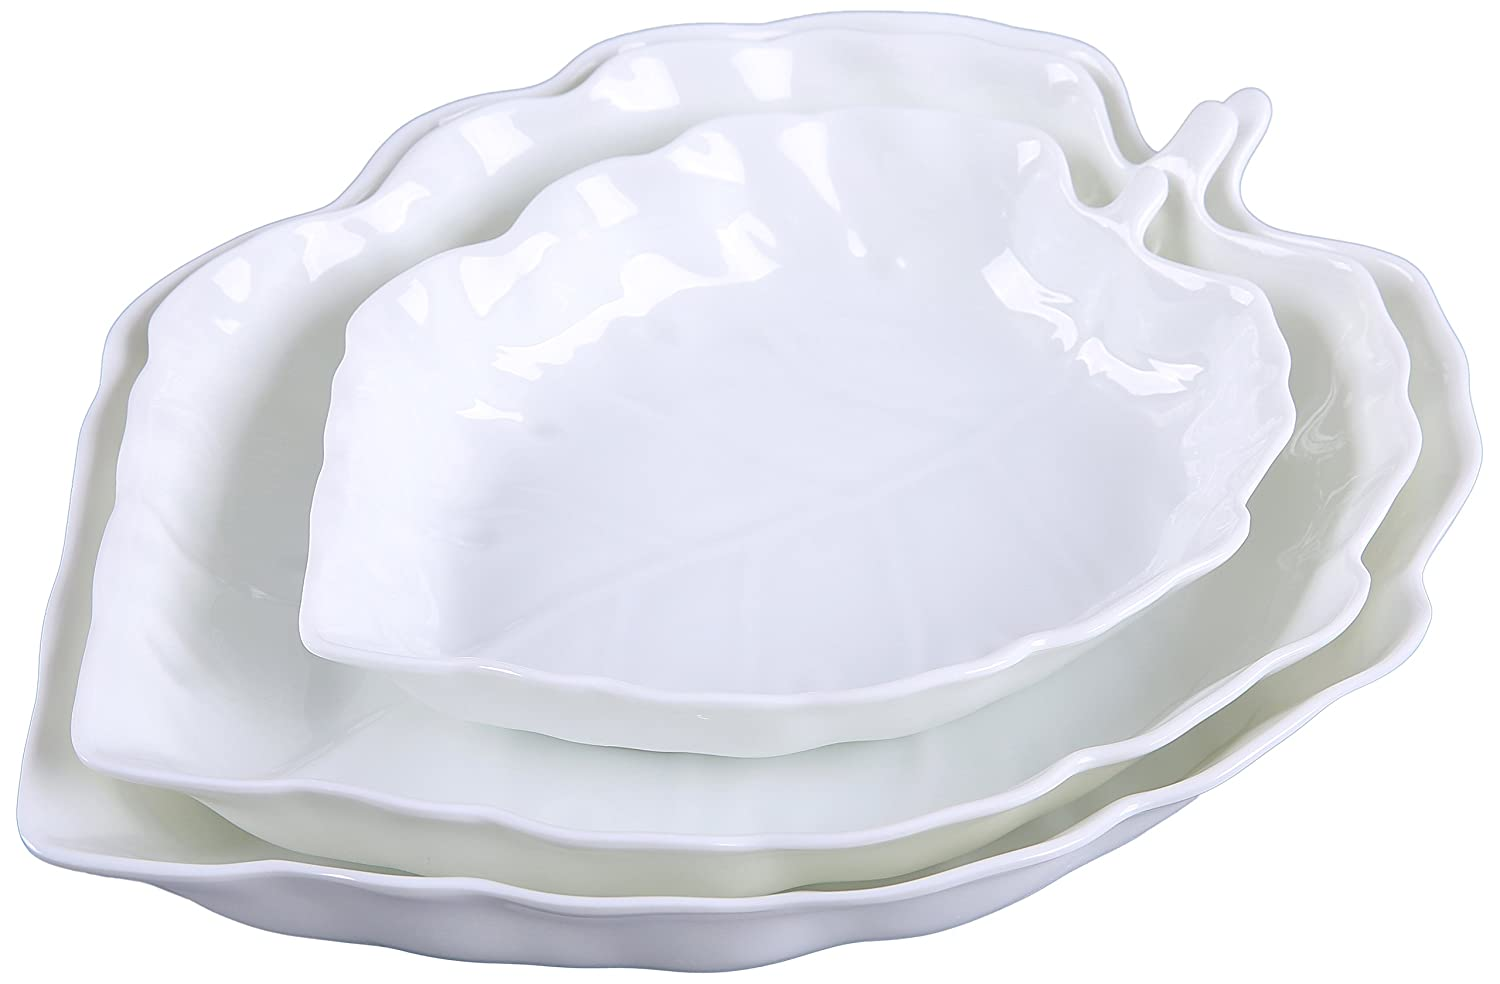 SHALL Housewares 8116 3 Piece Melamine Leaf Serving Tray, White